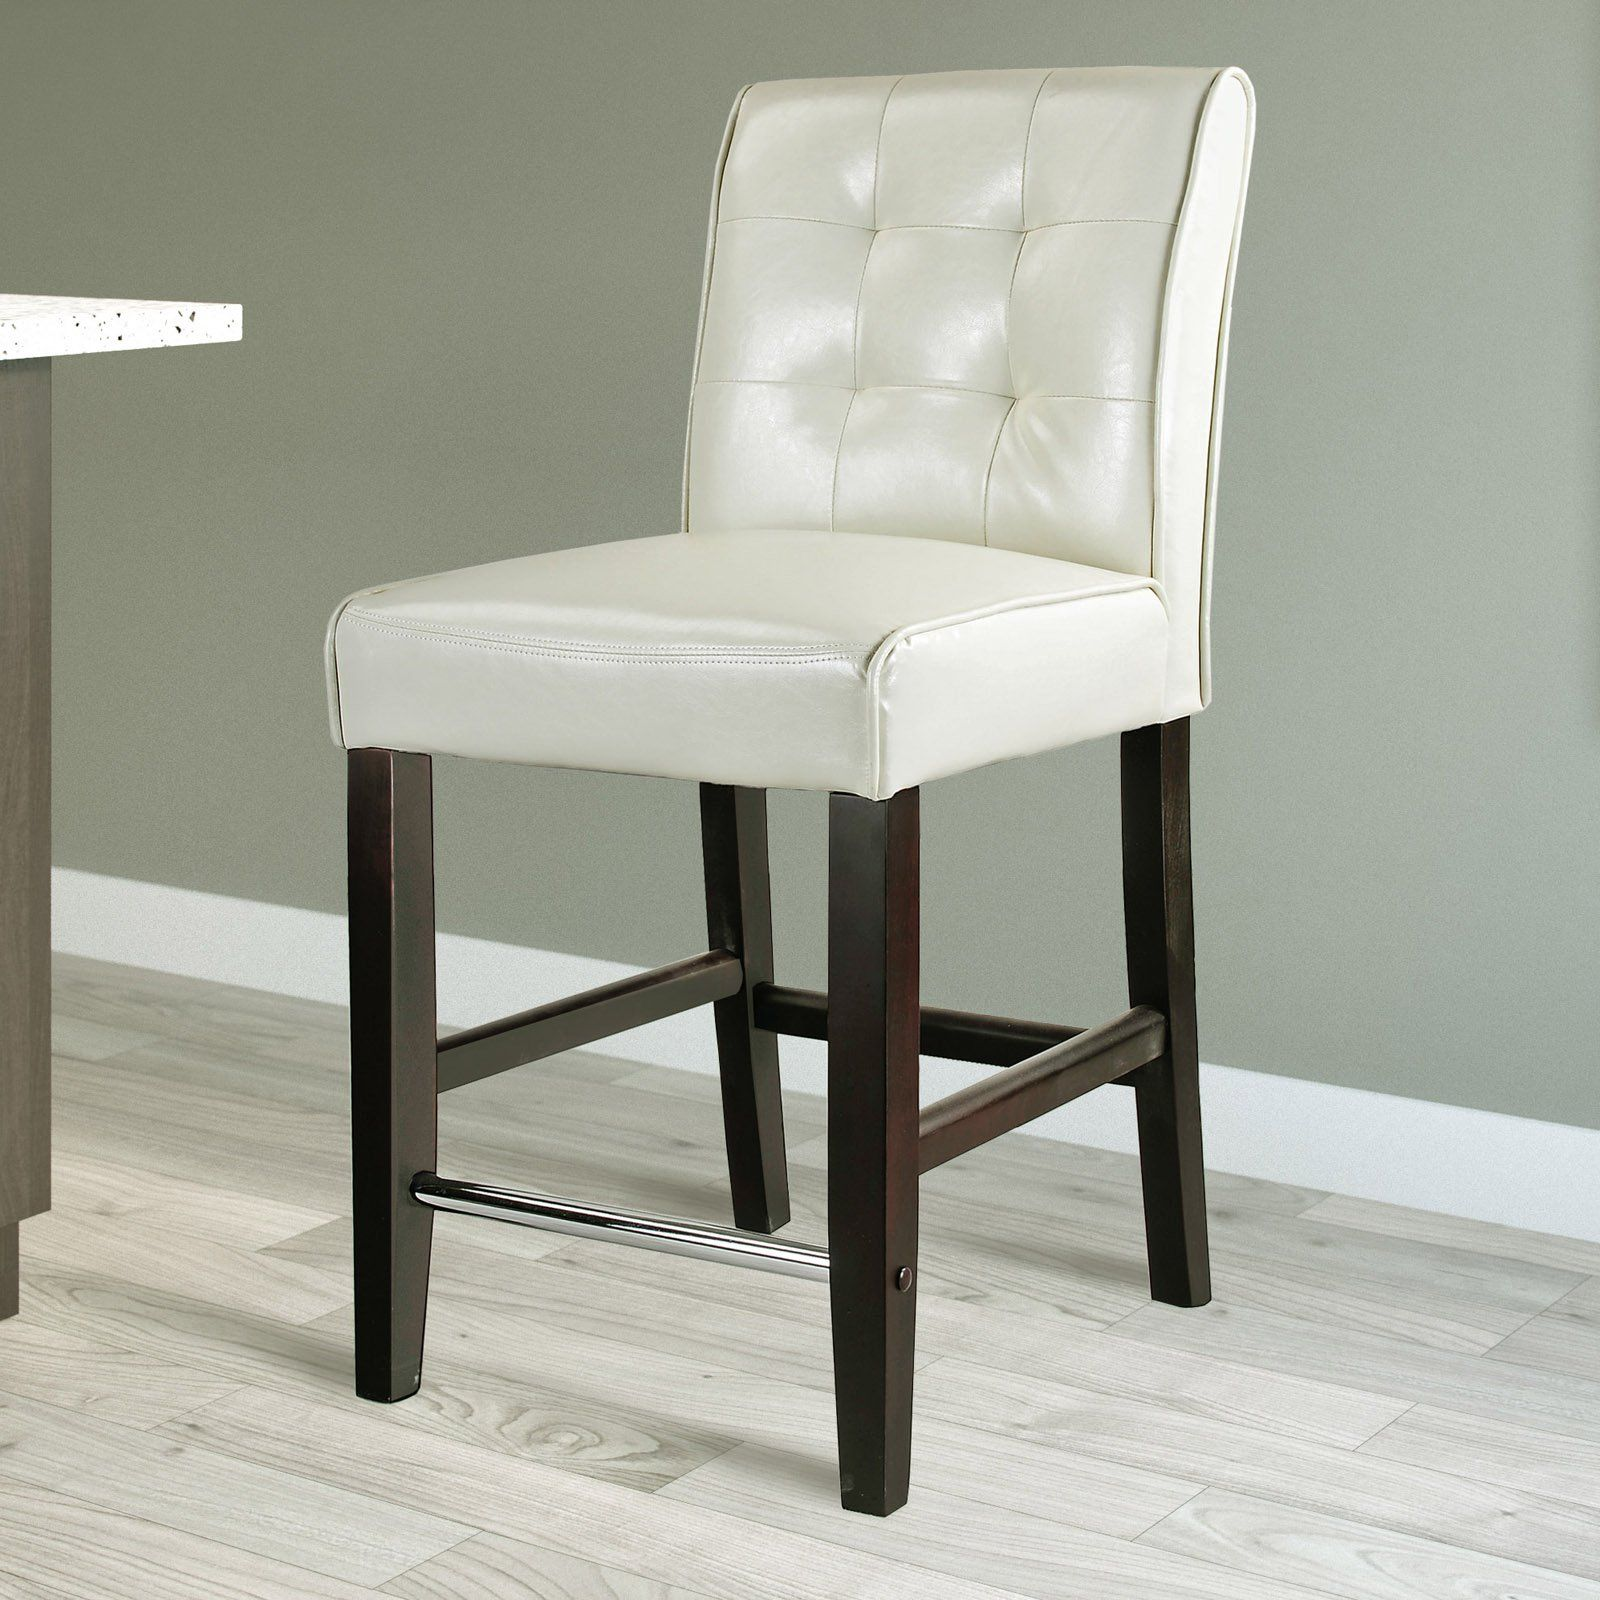 CorLiving Antonio Tufted Back Counter Height Stool